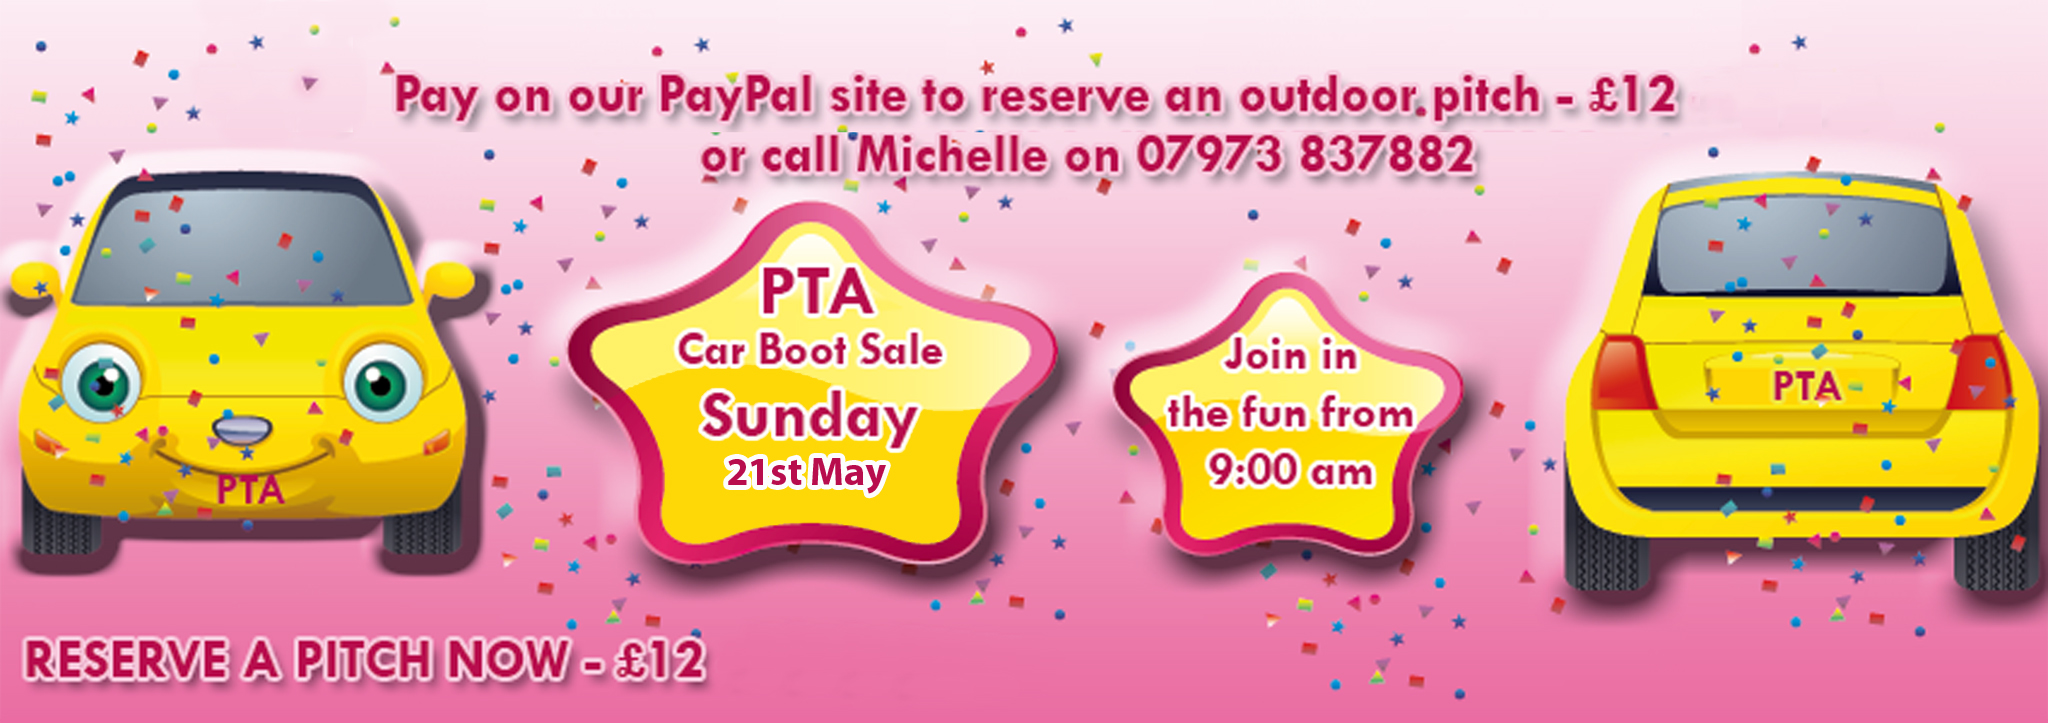 PTA Carboot 21 May 17